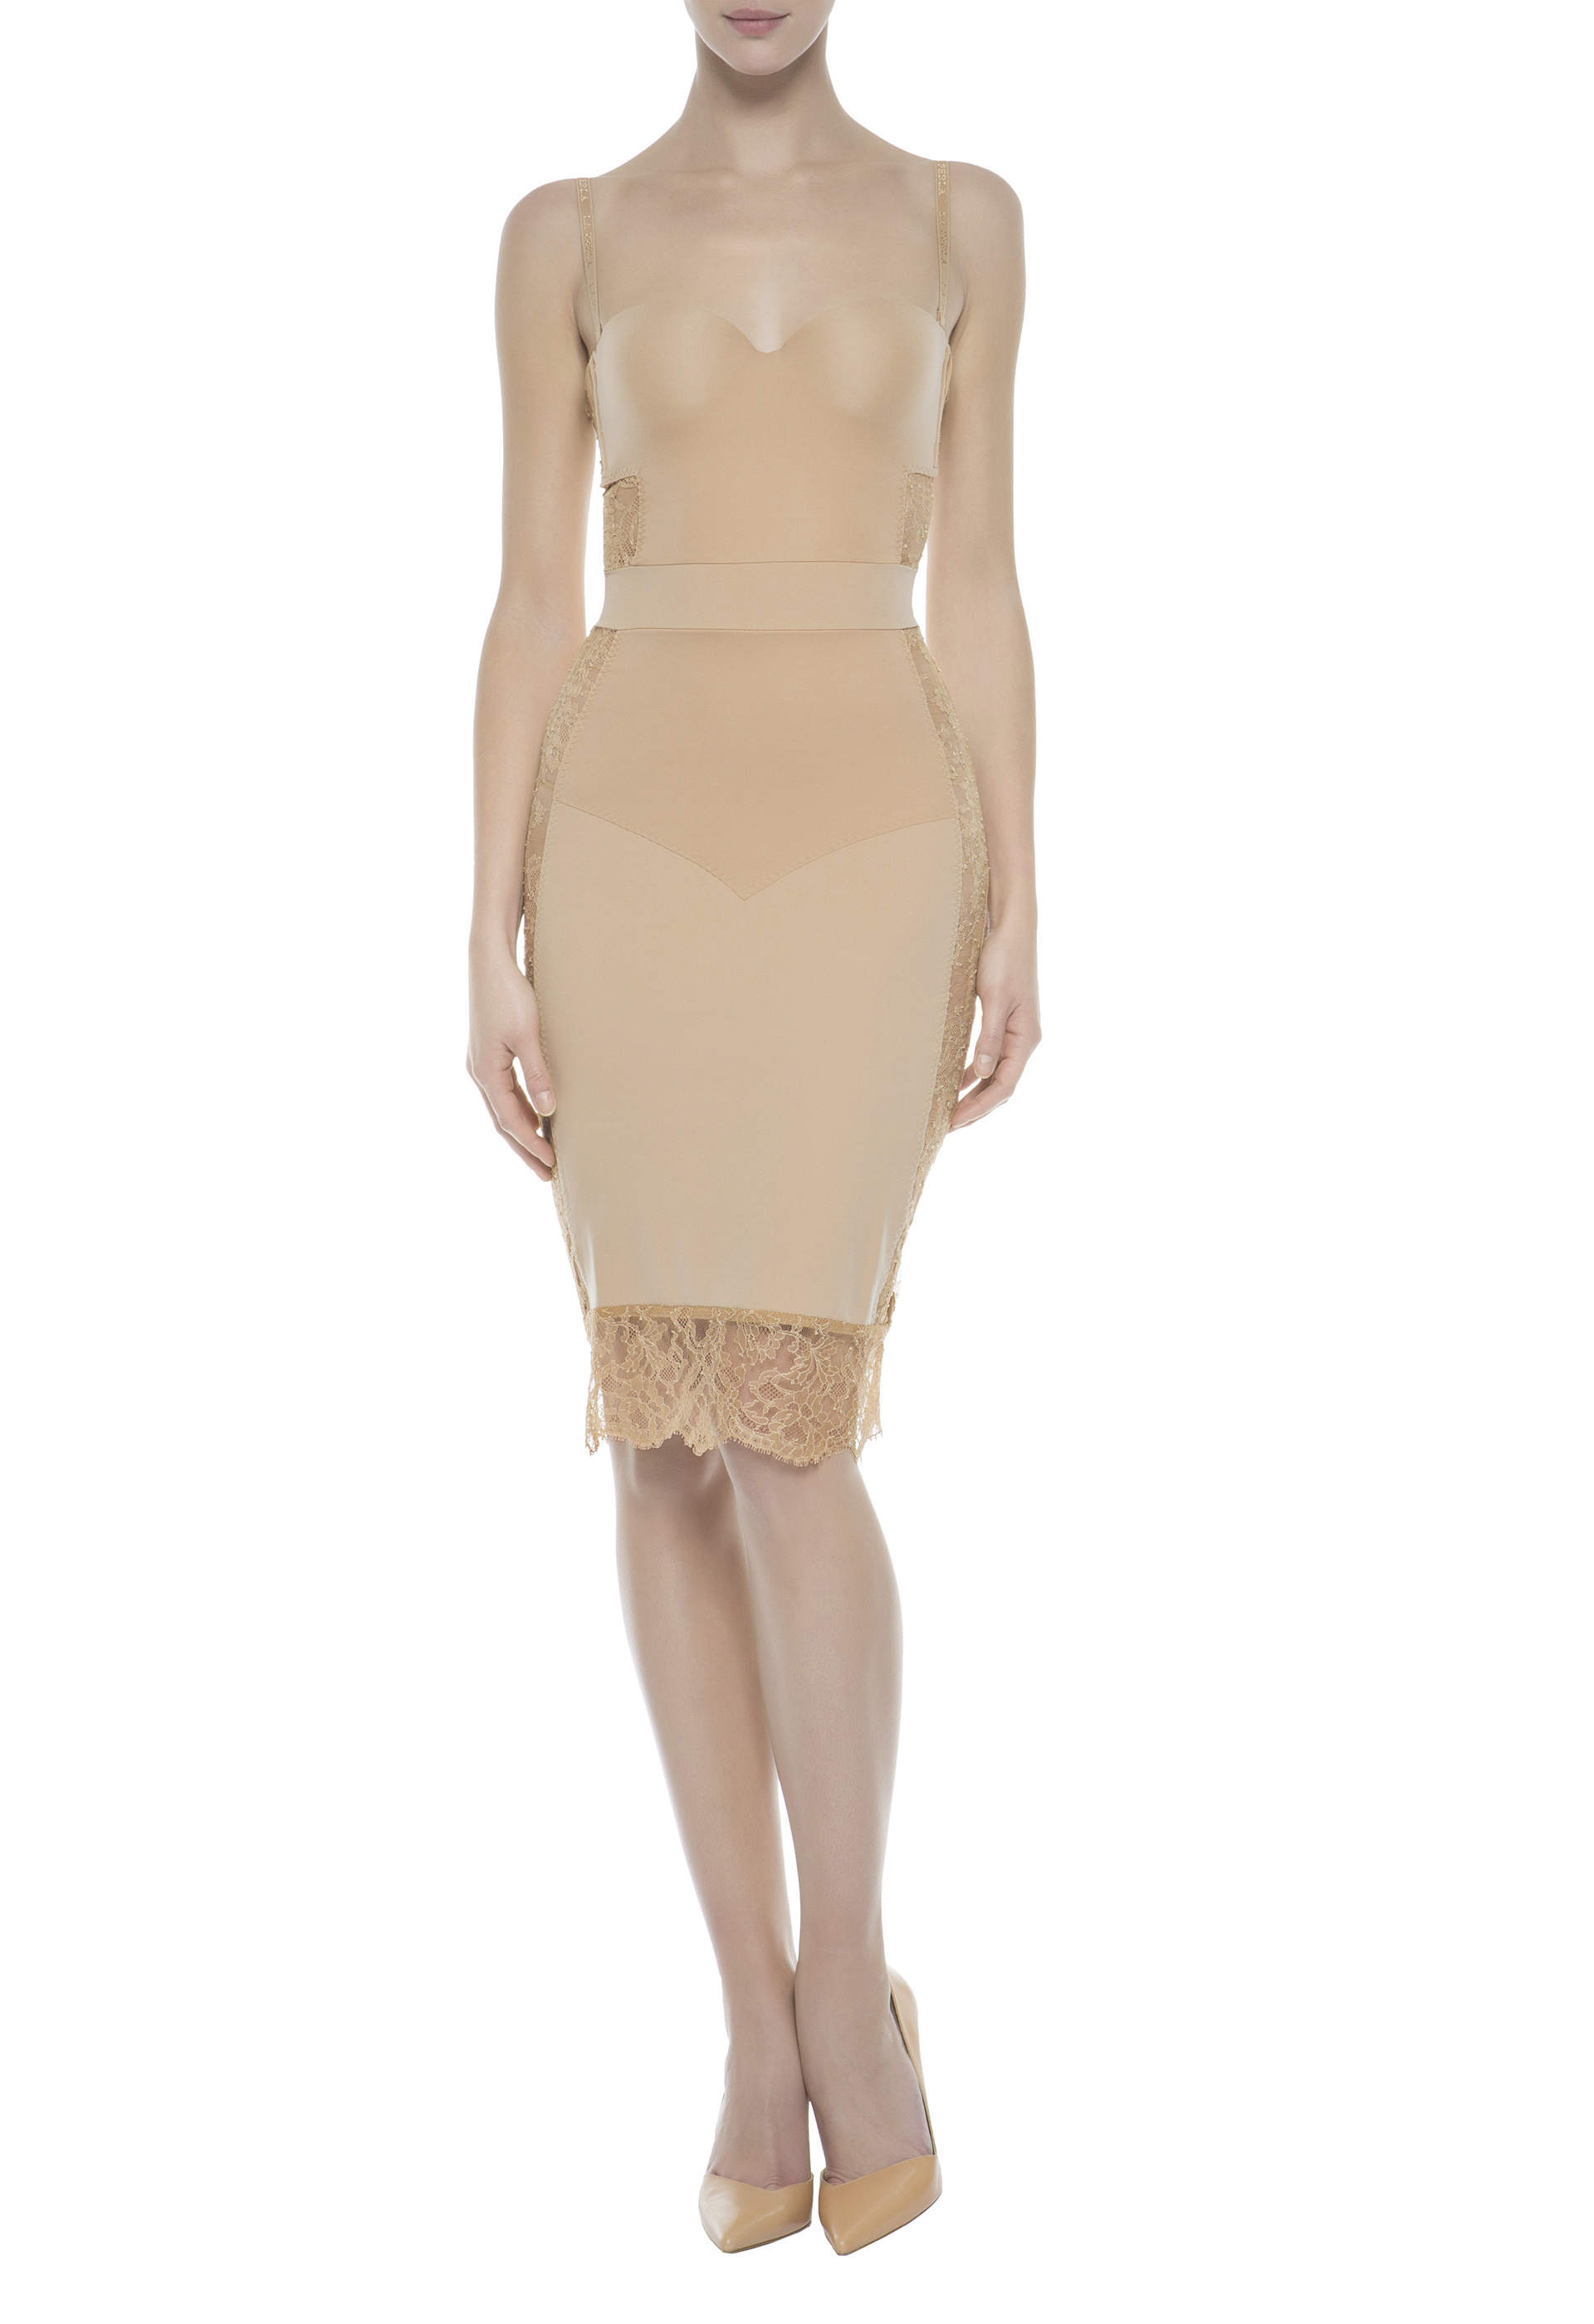 LA PERLA | DRESS: http://www.laperla.com/uk/cfilpd905871.html